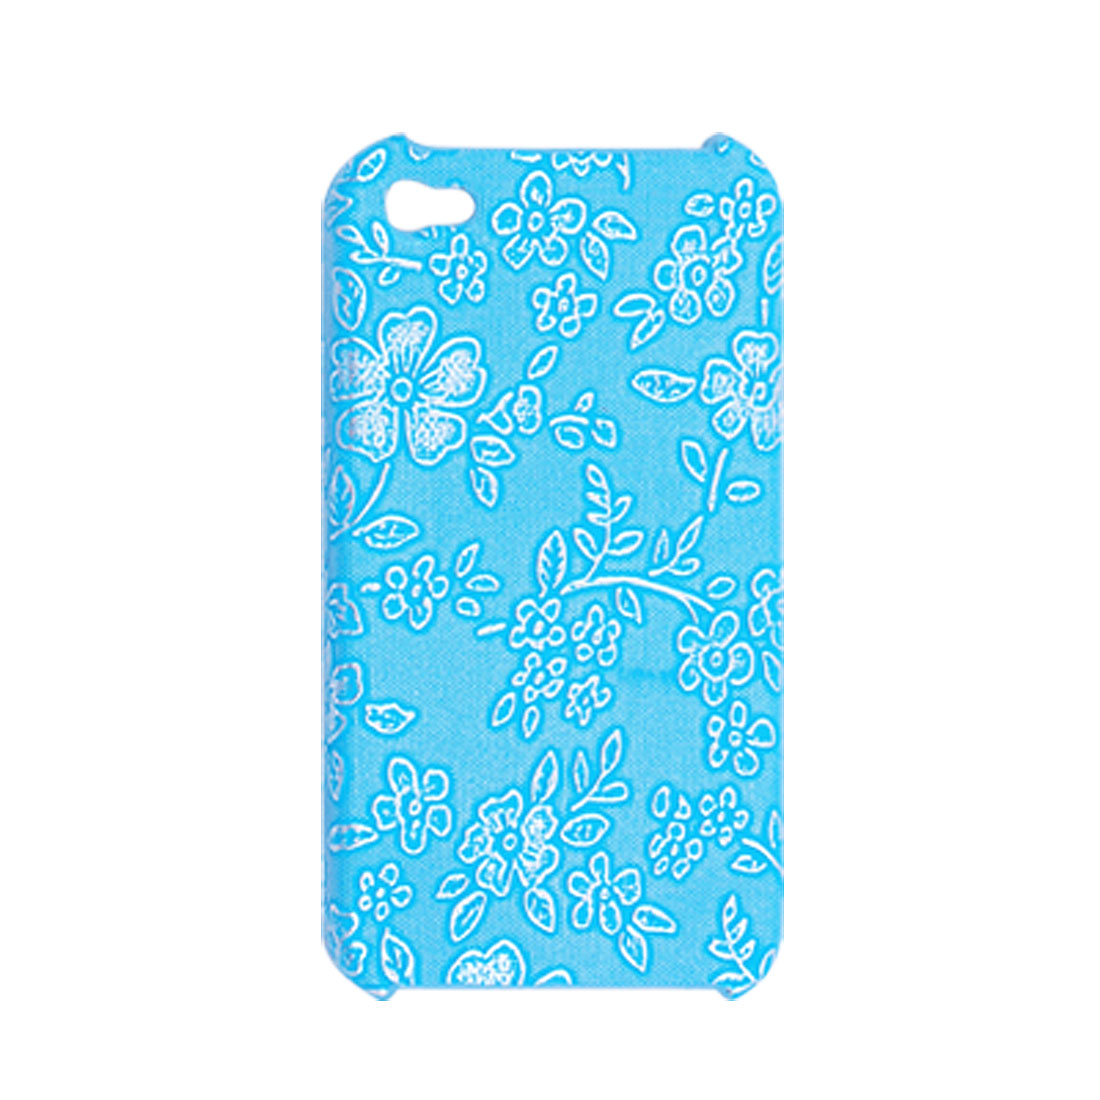 Blue Nonslip Hard Flower Case Cover for iPhone 4 4G